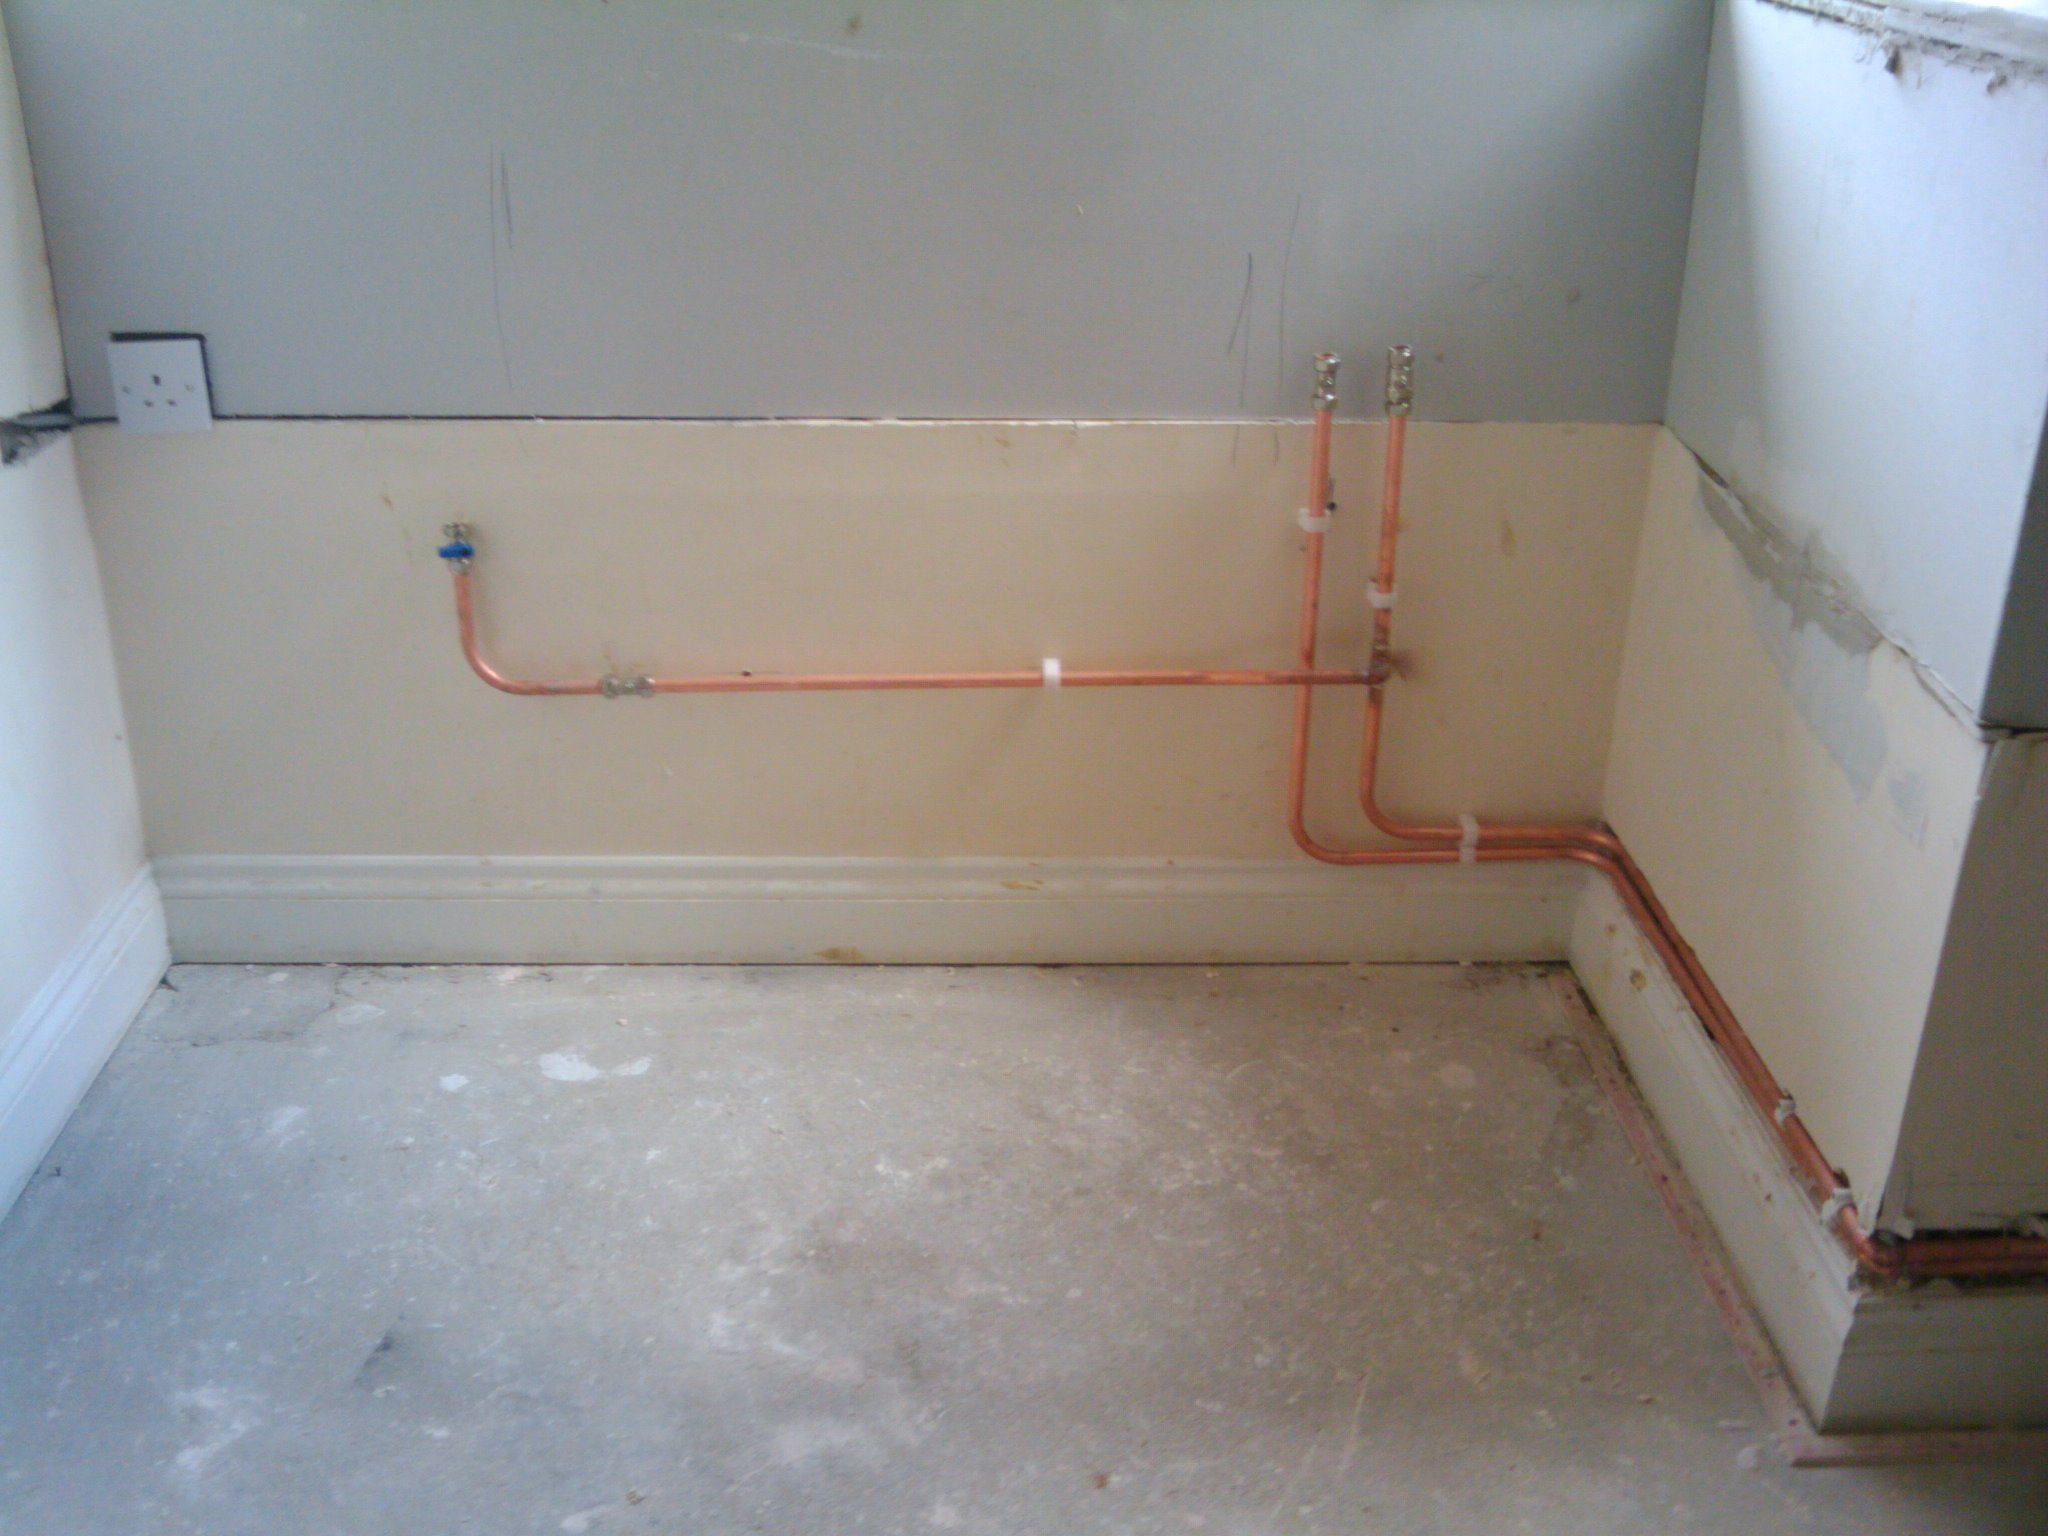 Problem Pipes Not Properly Chased Into Wall My Extension